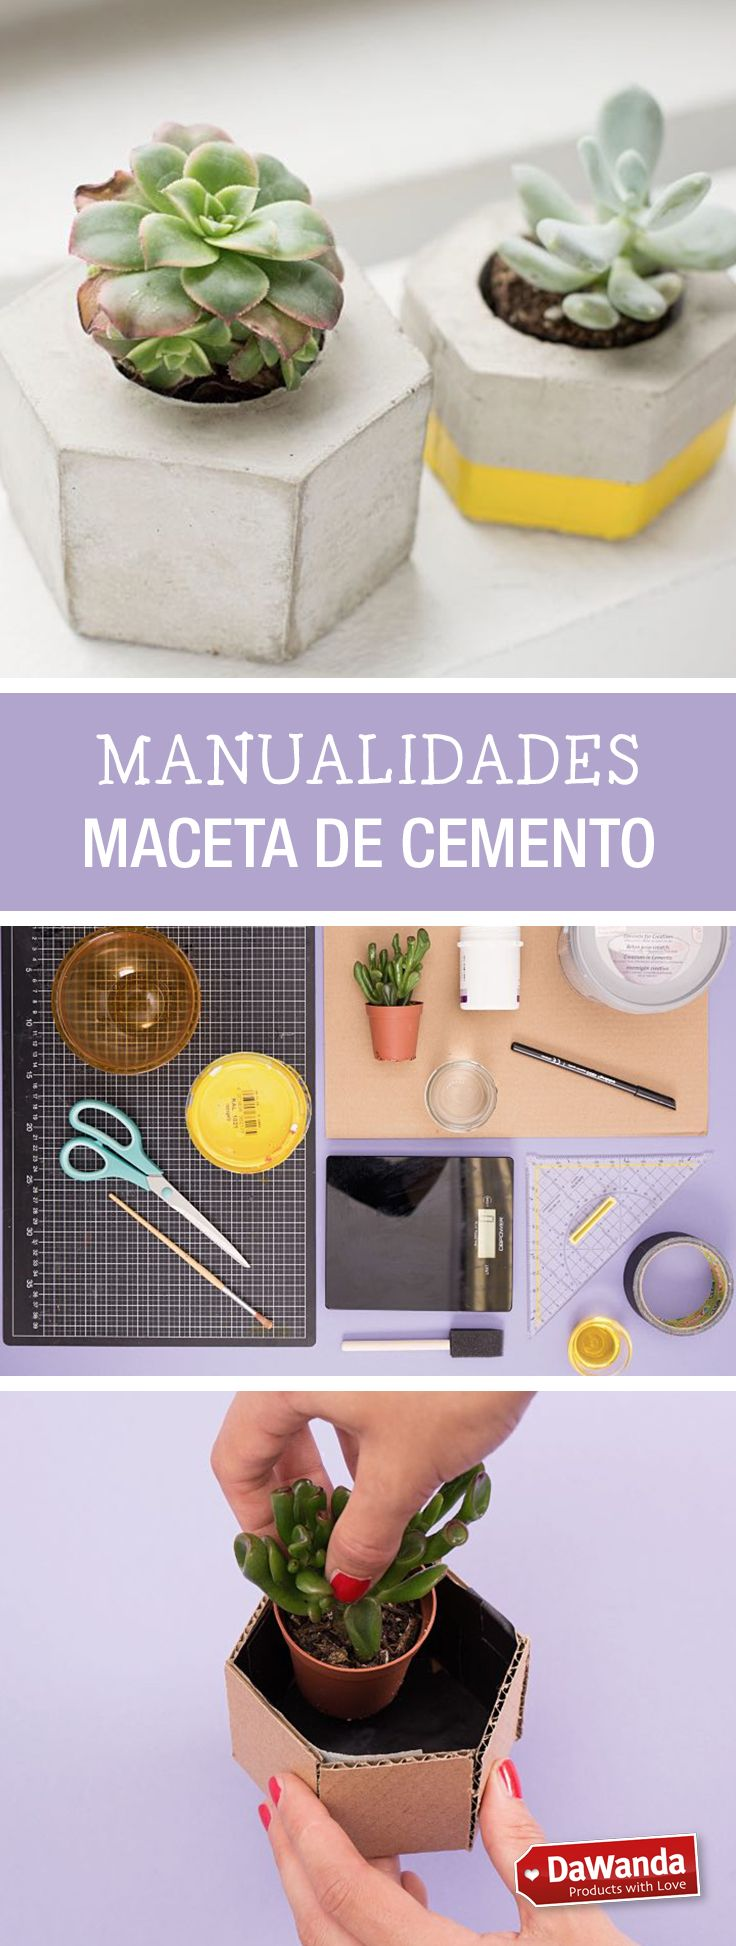 17 best ideas about como hacer una maceta on pinterest - Como hacer macetas de cemento ...